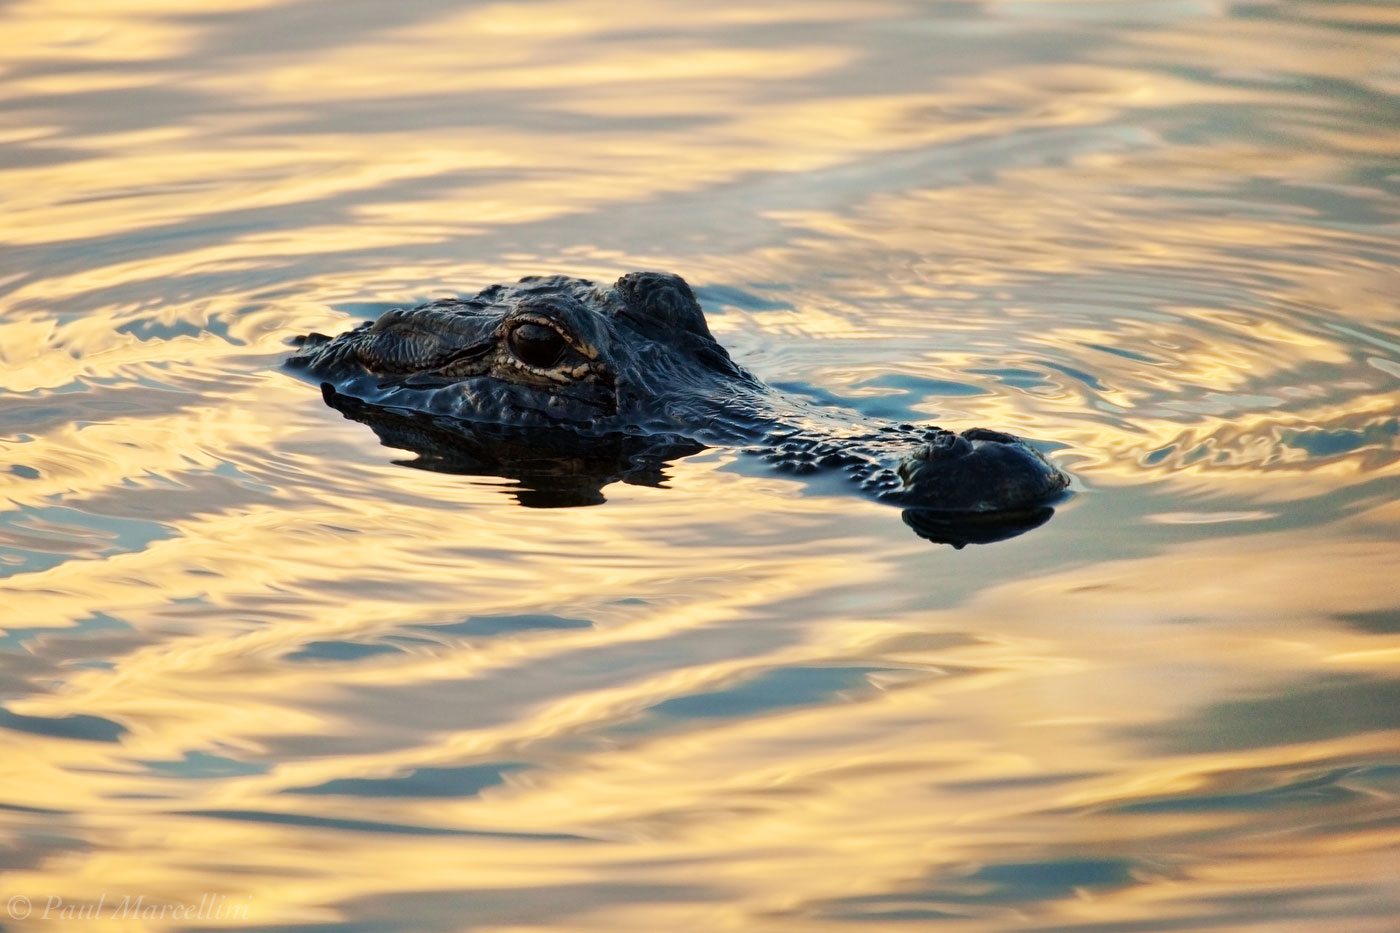 Alligator mississippiensis, sunset, everglades, photo